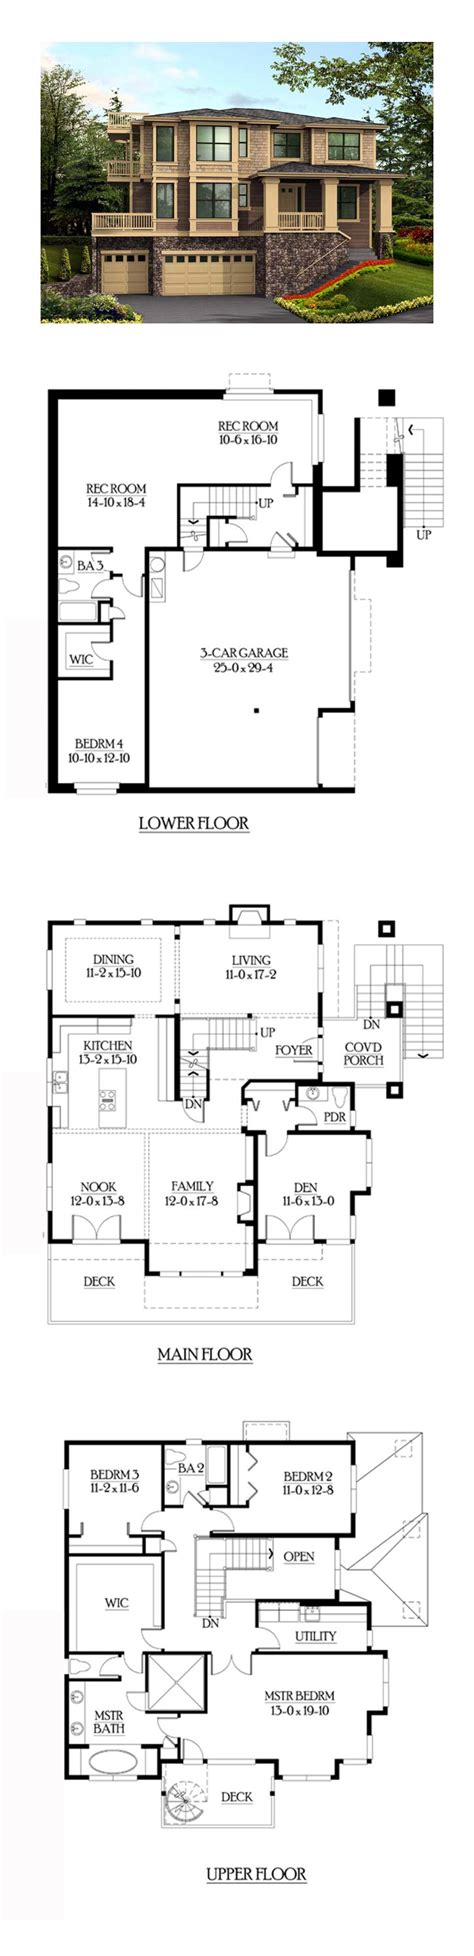 House Plans With Basement by Best 25 Basement House Plans Ideas On Pinterest House